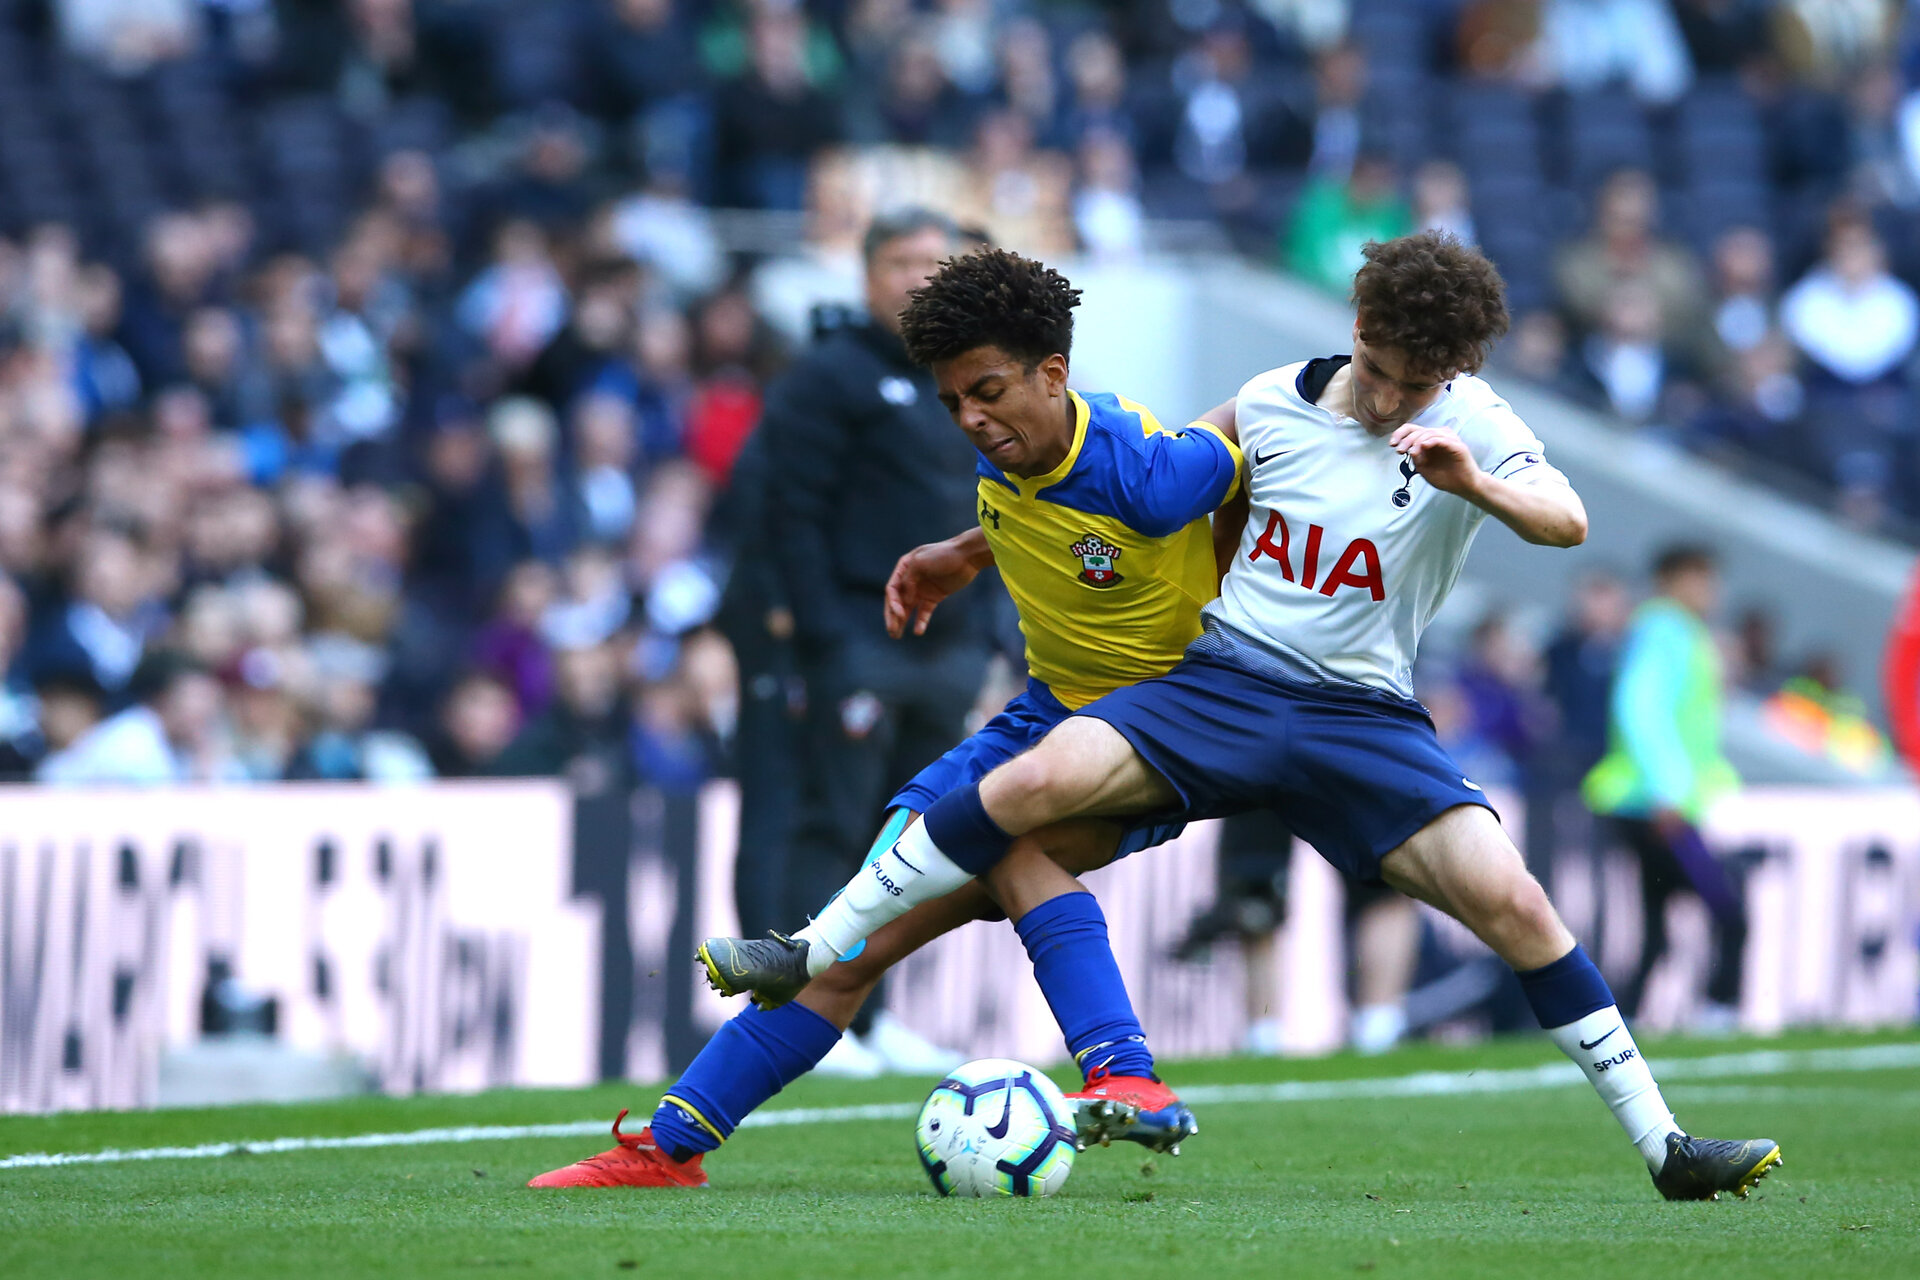 LONDON, ENGLAND - MARCH 24:  during the U18s Premier League match between Tottenham Hot Spur and Southampton FC at Tottenham Hotspur Stadium on March 24, 2019 in London, England. (Photo by James Bridle - Southampton FC/Southampton FC via Getty Images)